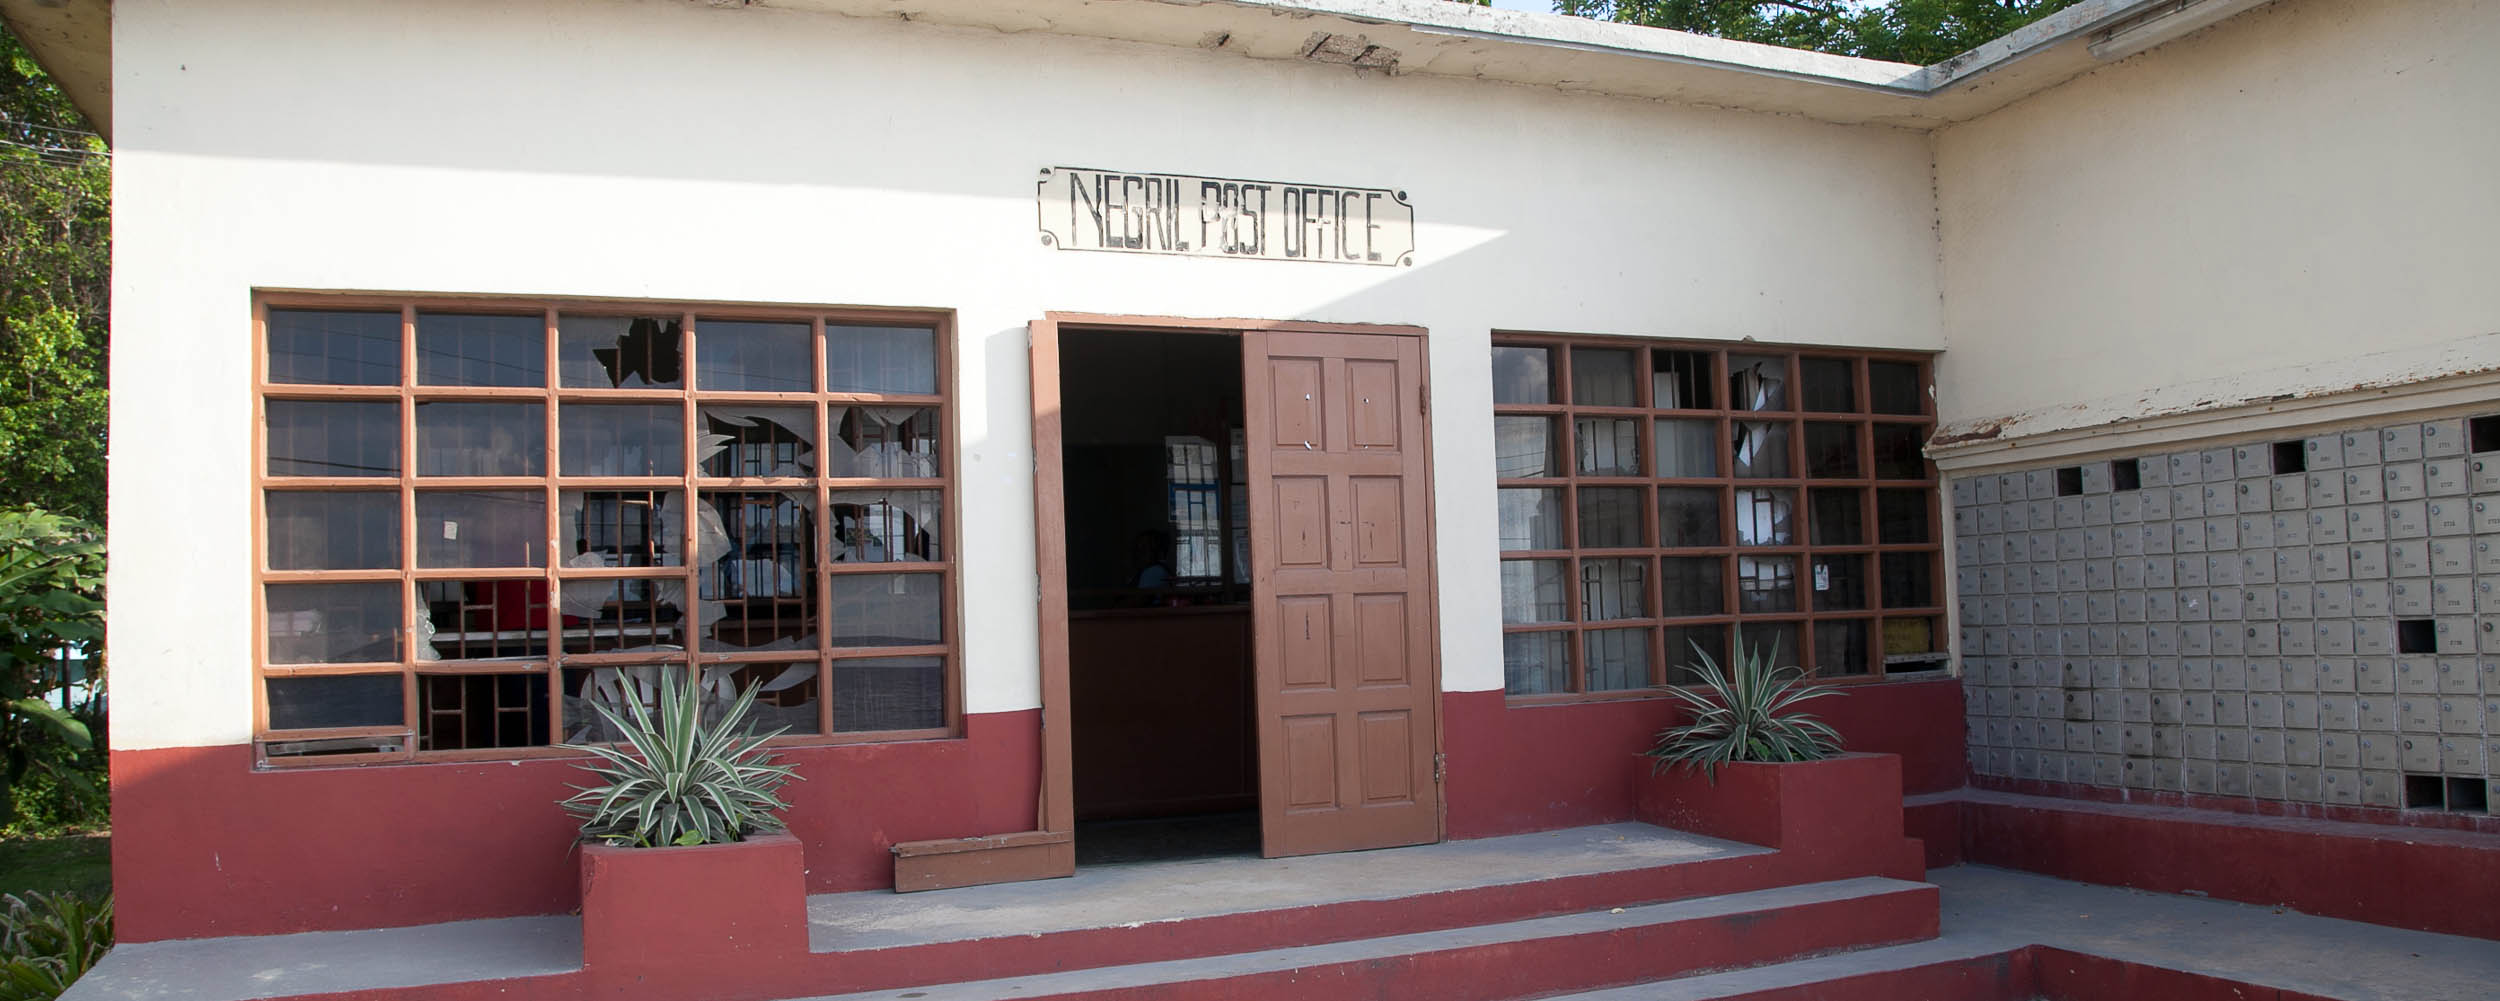 Negril Post Office, Negril Jamaica